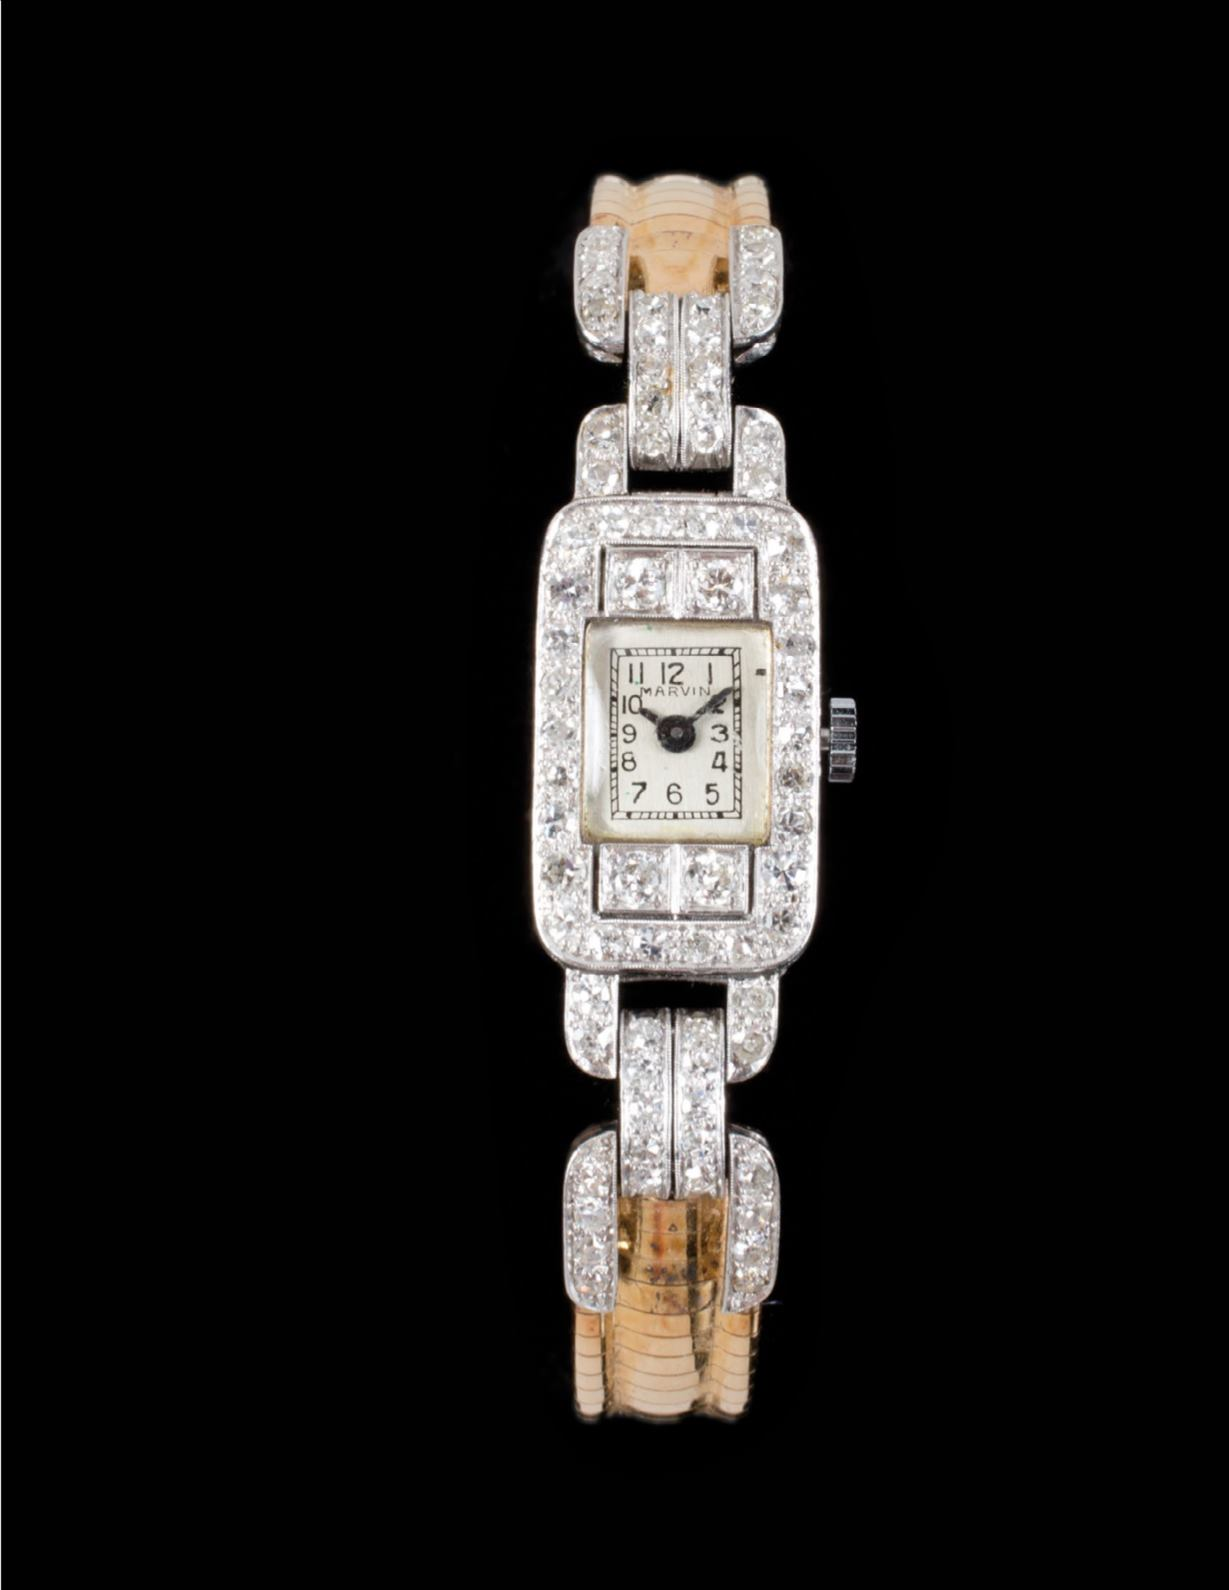 A diamond watch owned by Marilyn Monroe, with movement by Marvin, is also up for sale.